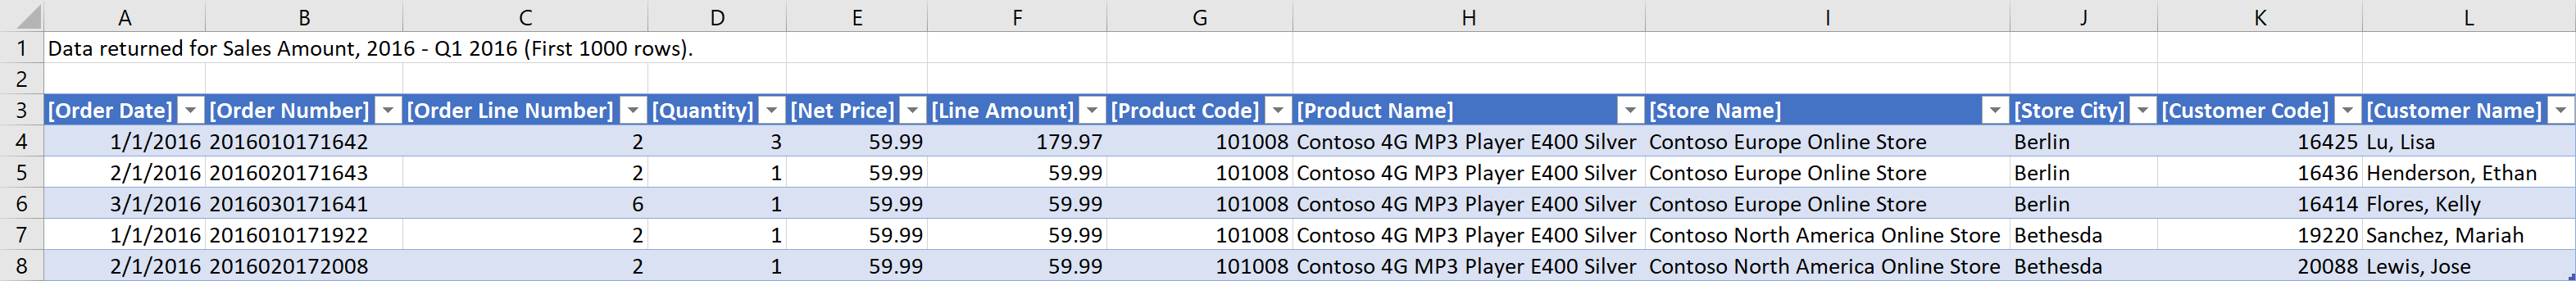 Controlling drillthrough using Detail Rows Expressions in DAX - SQLBI